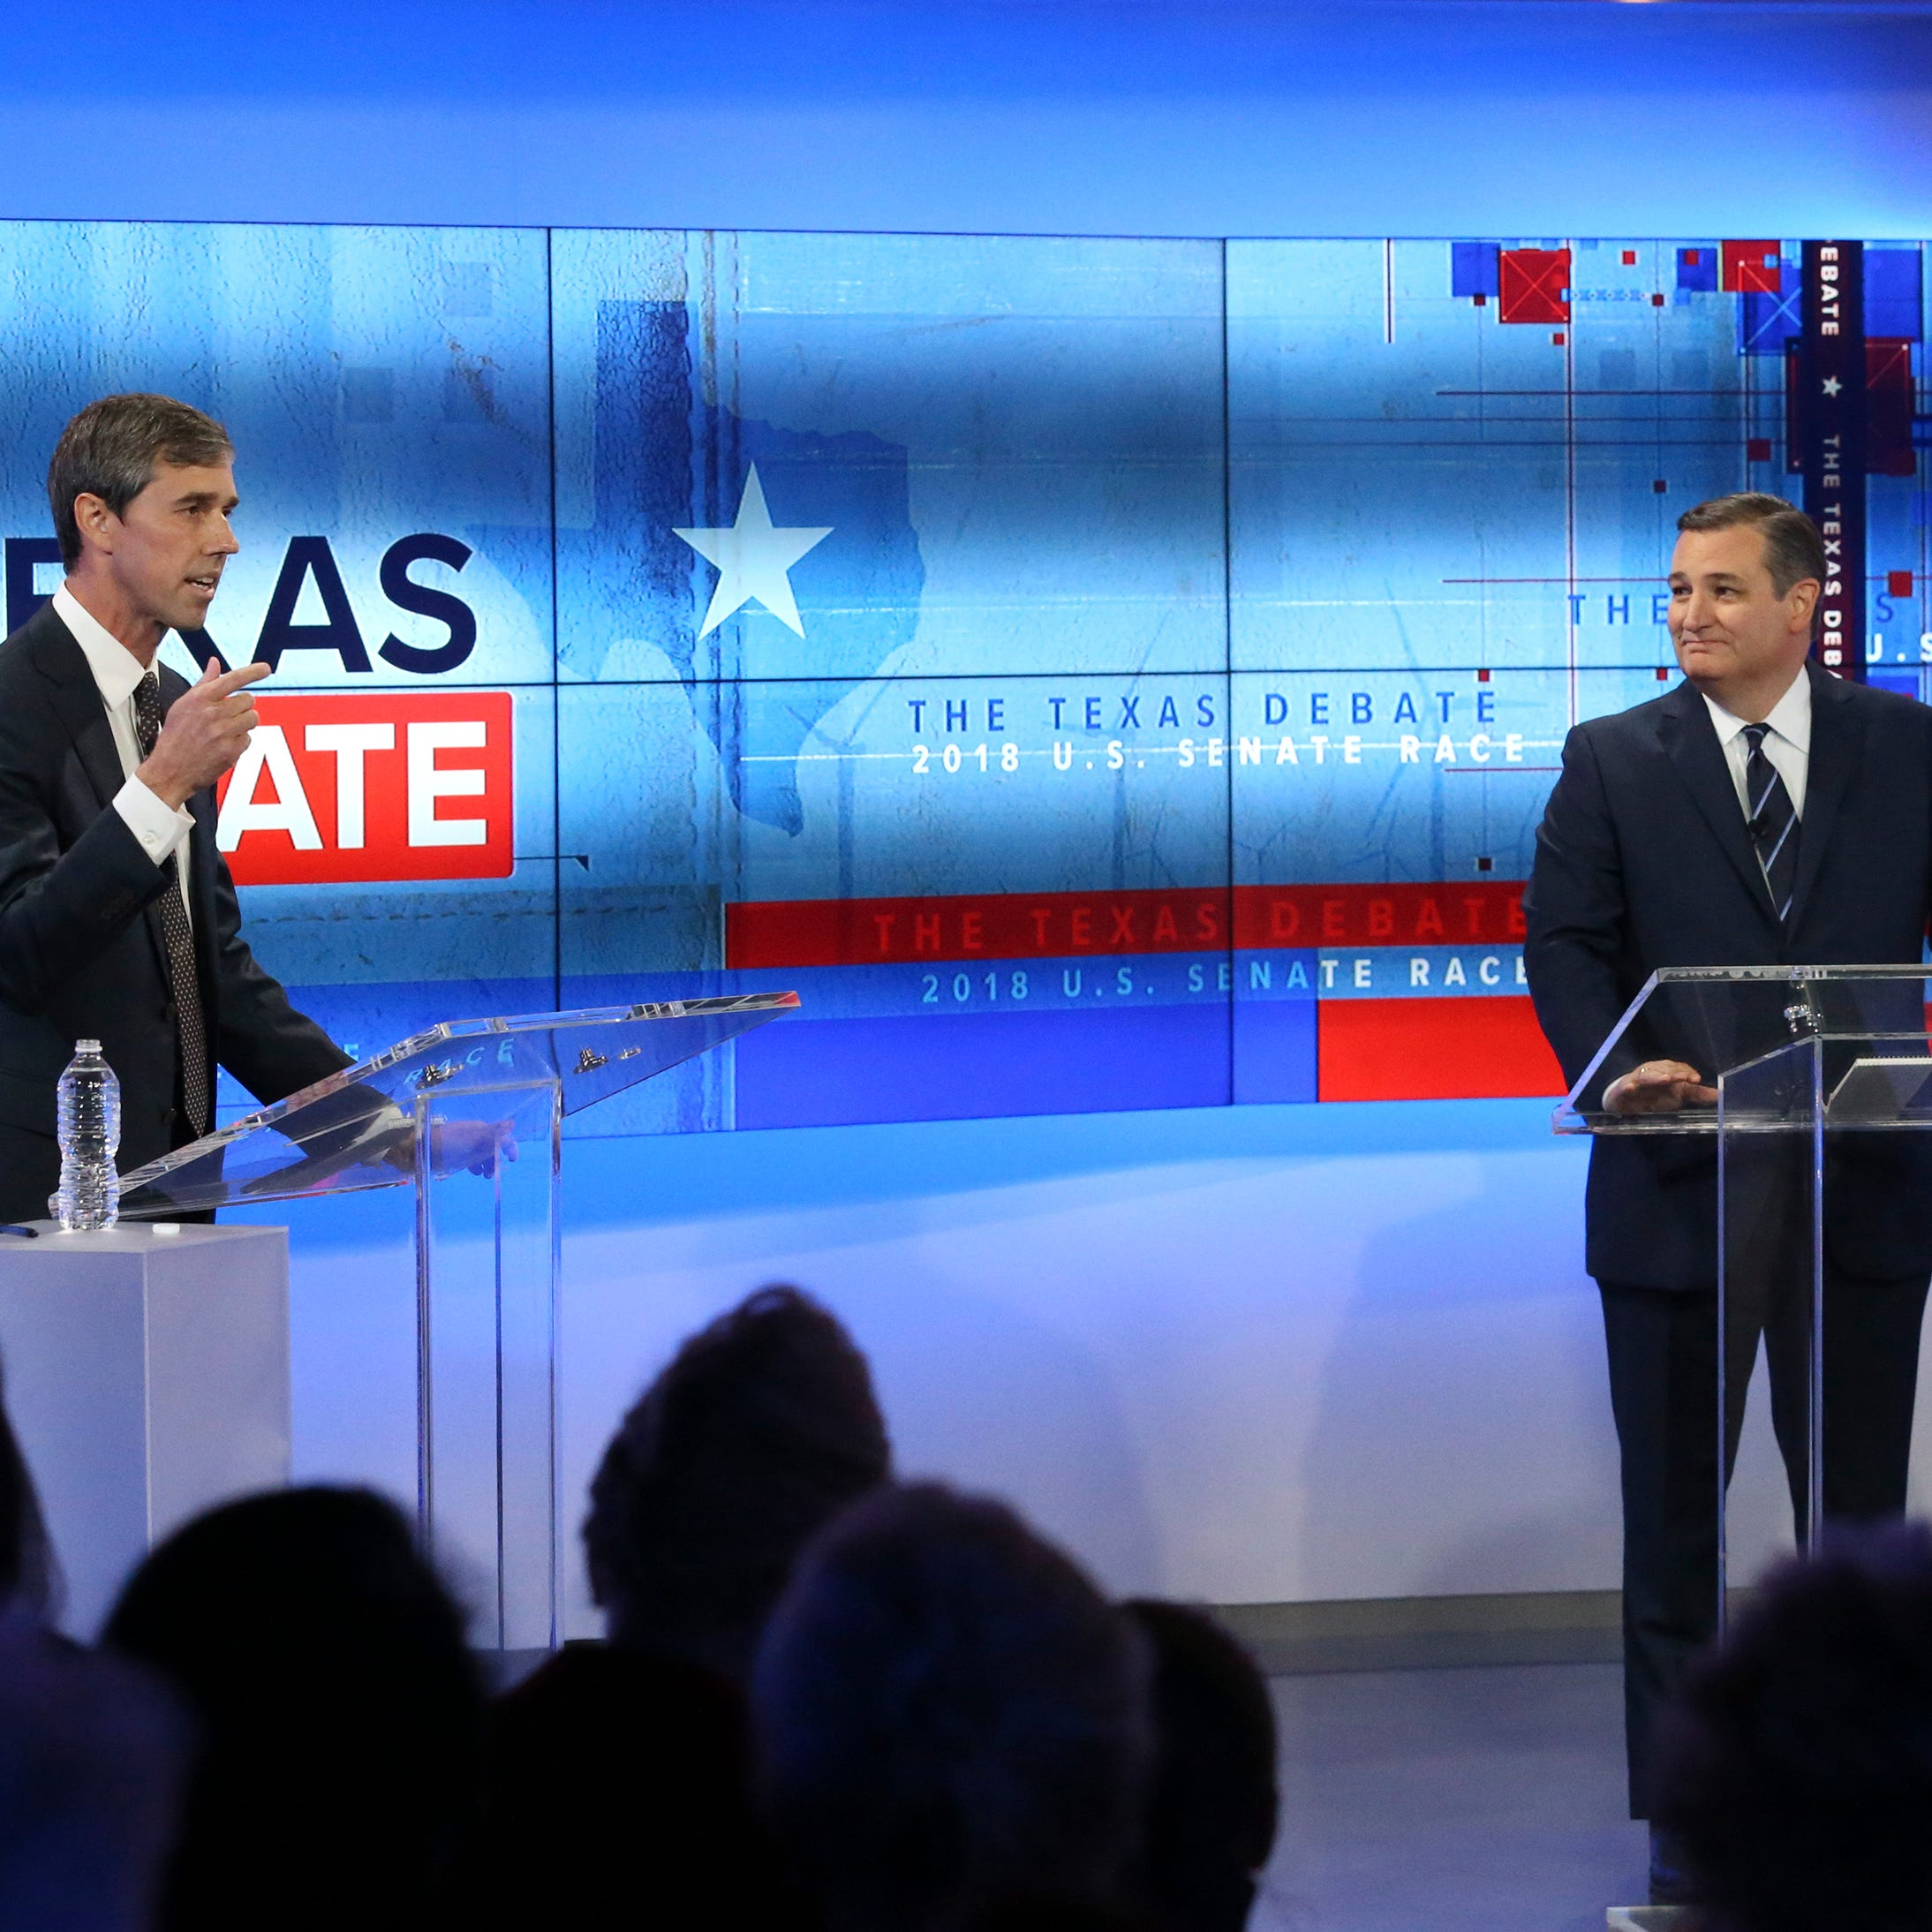 Cruz-Beto debate: Who won the final Texas debate between Ted Cruz and Beto O'Rourke?